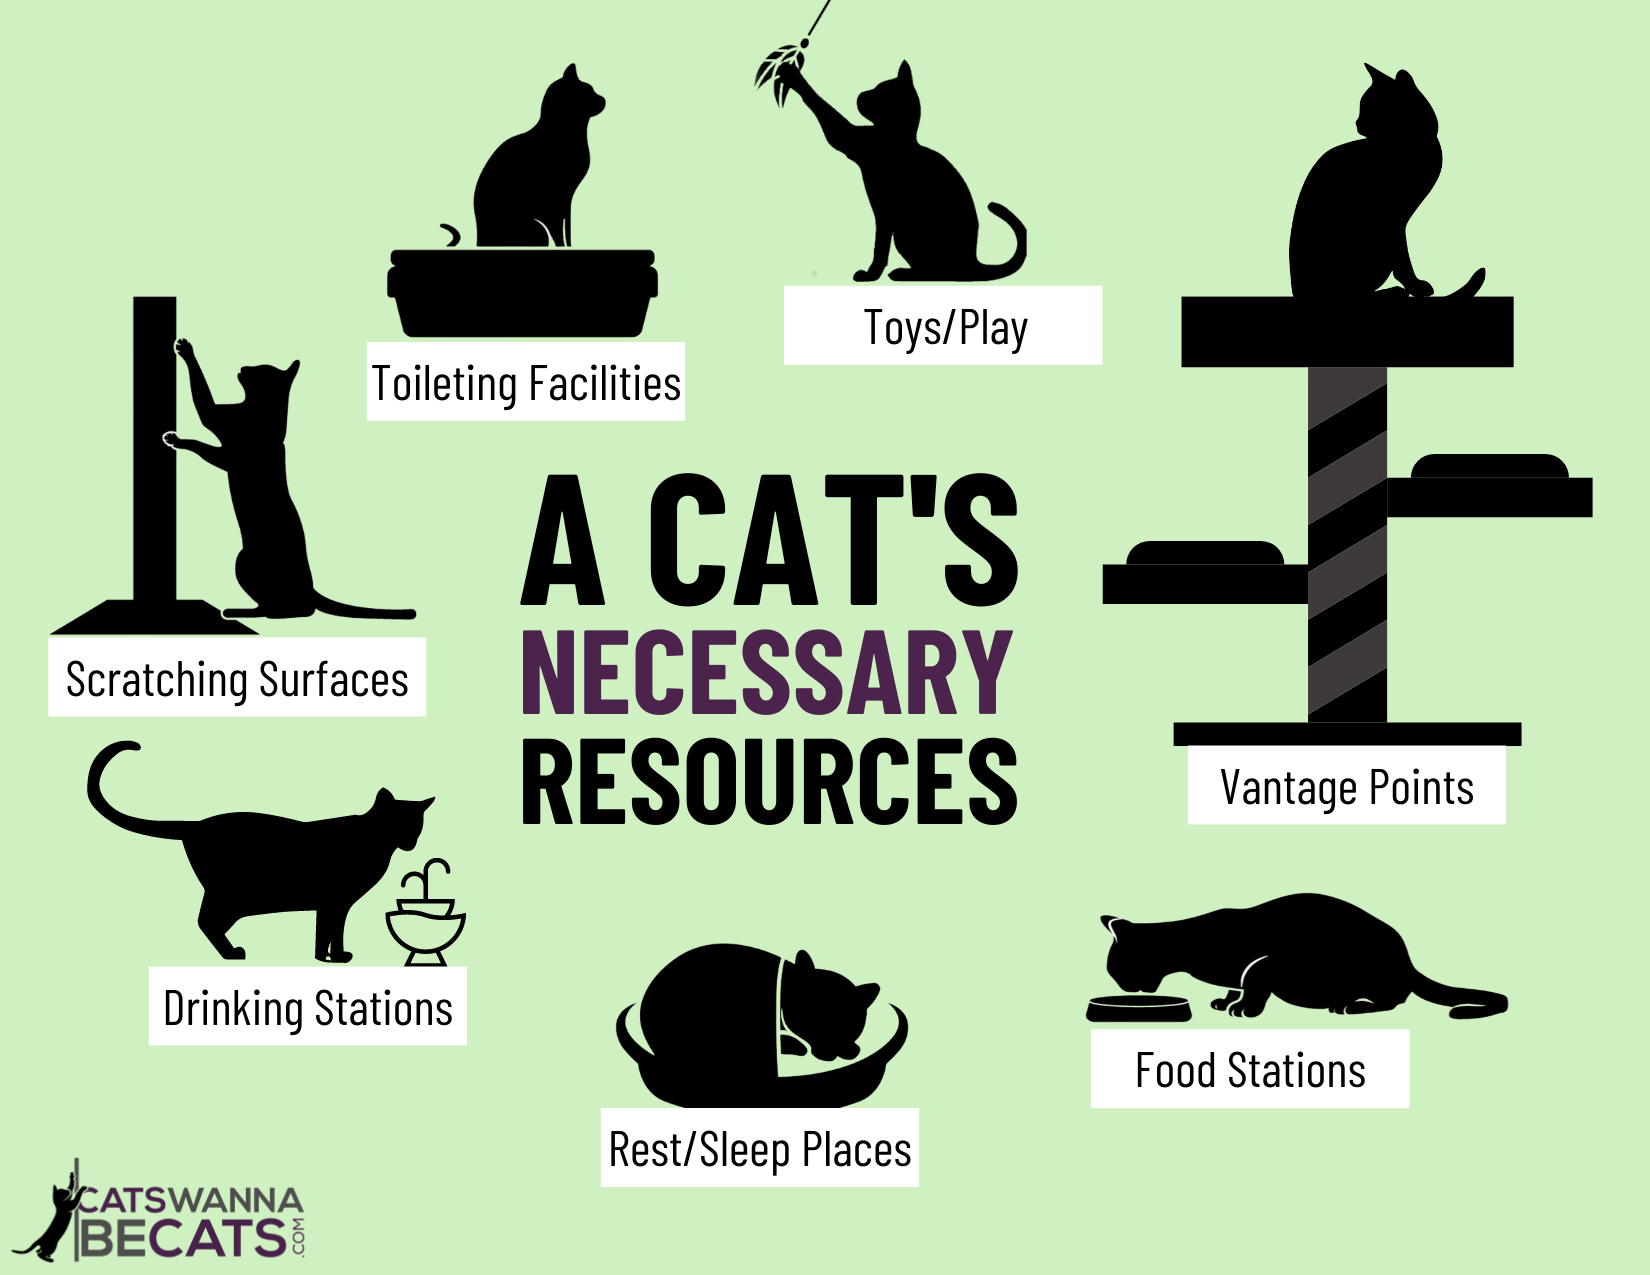 A Cat's Necessary Resources